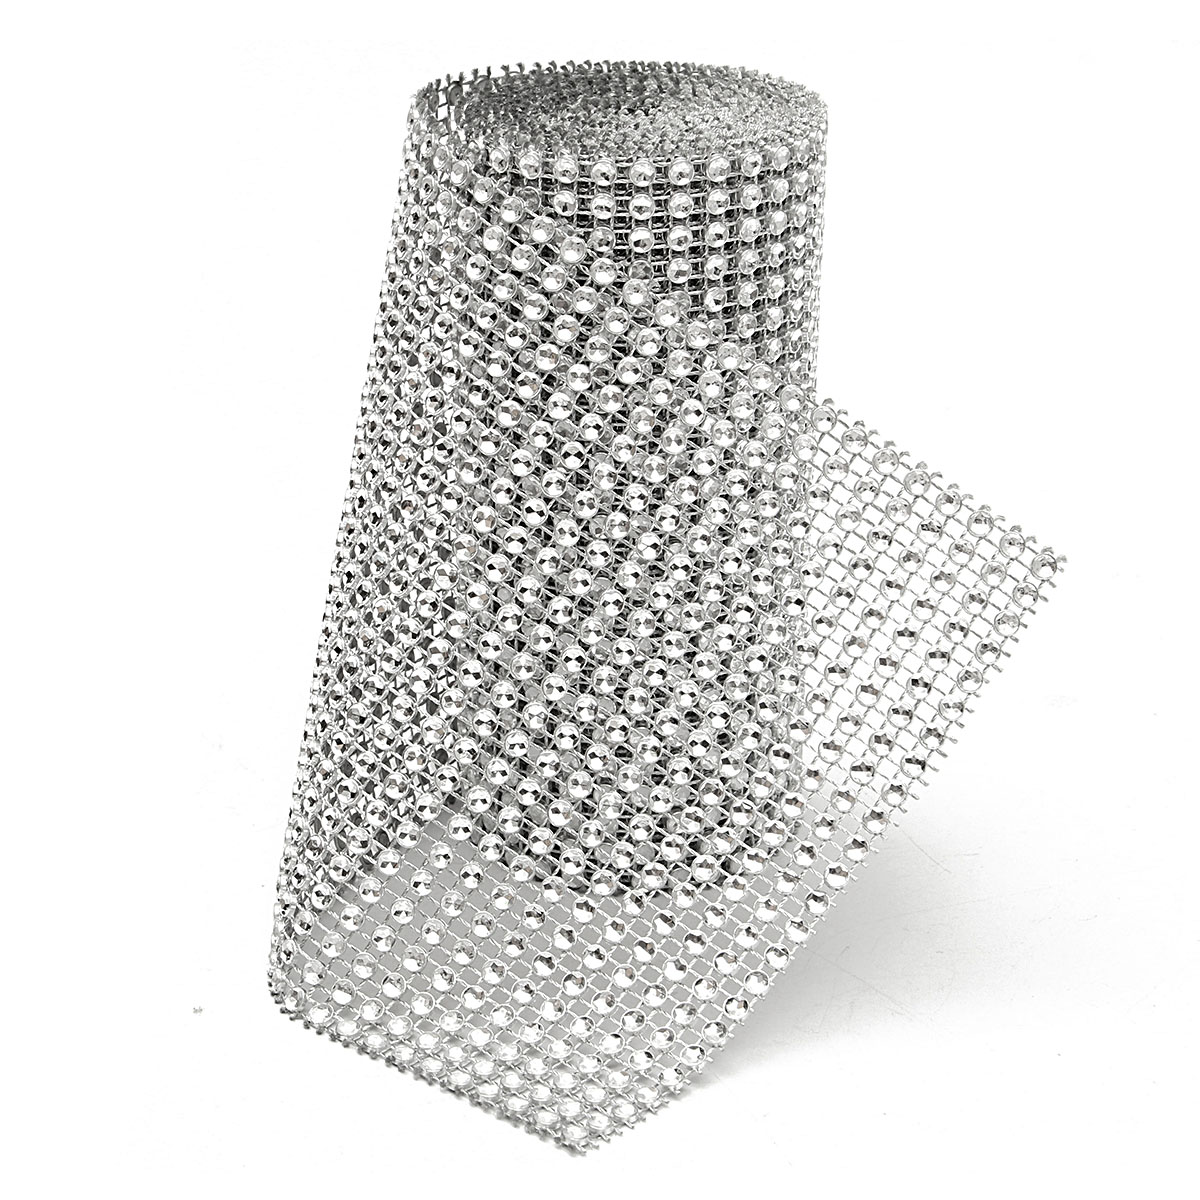 Silver Diamond Rhinestone Ribbon Wrap Bulk DIY Bling-Birthday/ Bridal Shower/Wedding Cake Vase Decorations, Party Supplies,2 Yards